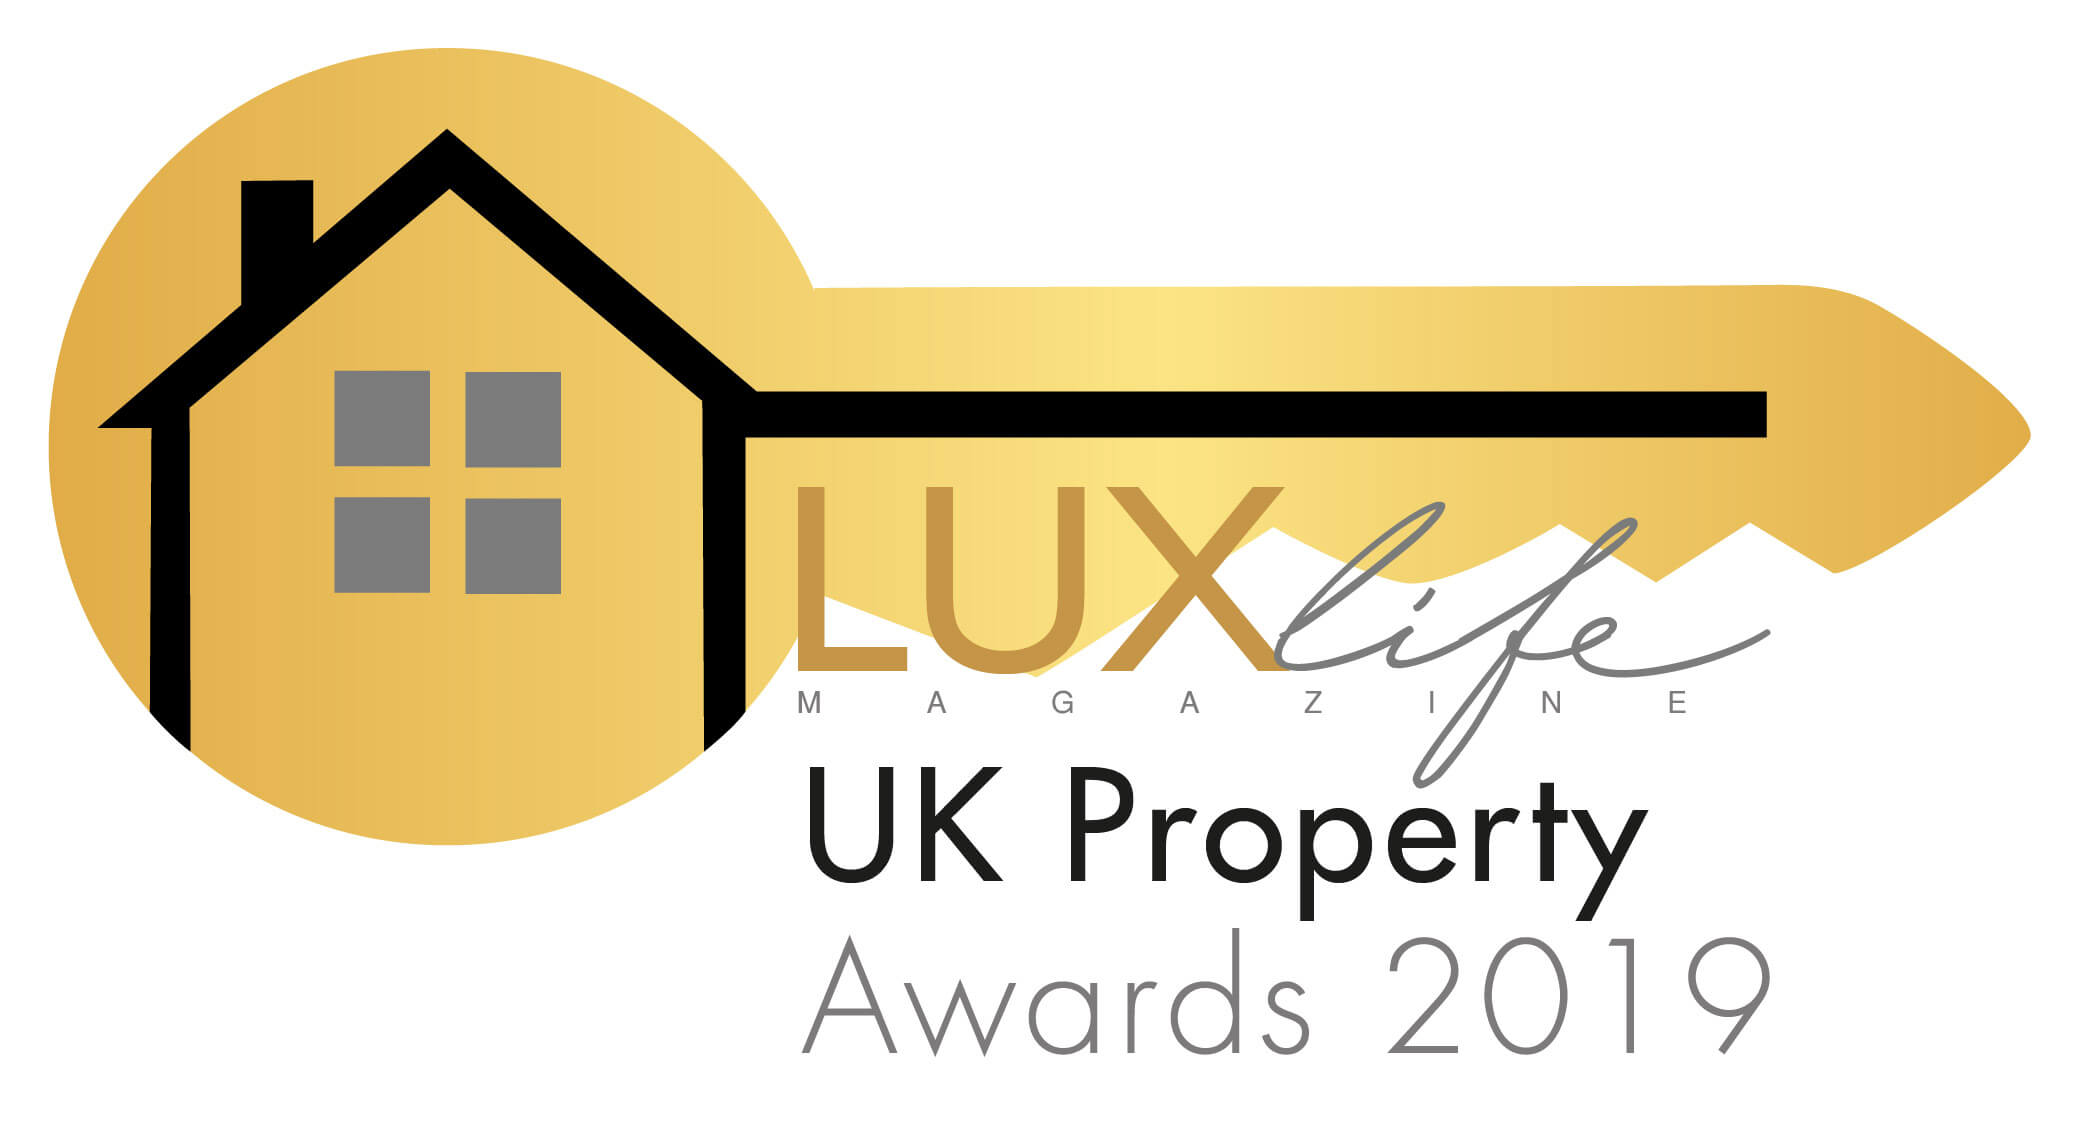 LUXlife UK Property Awards 2019 logo